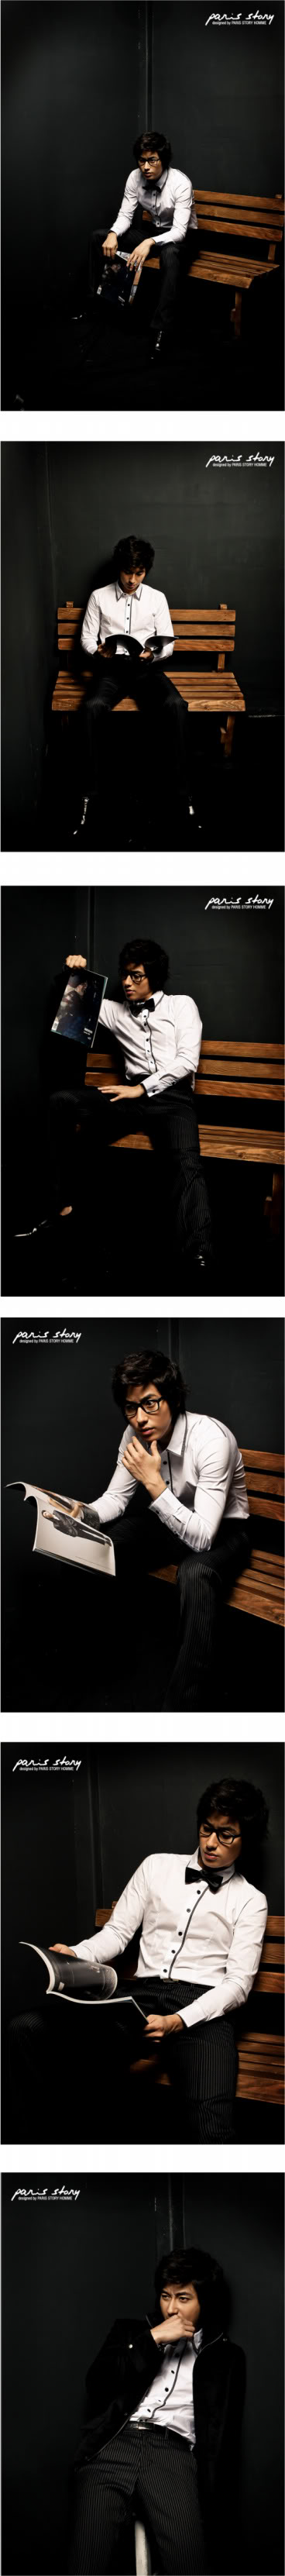 Lee Jee Hoon - Paris Story Hommes Collection I PH85-S-1